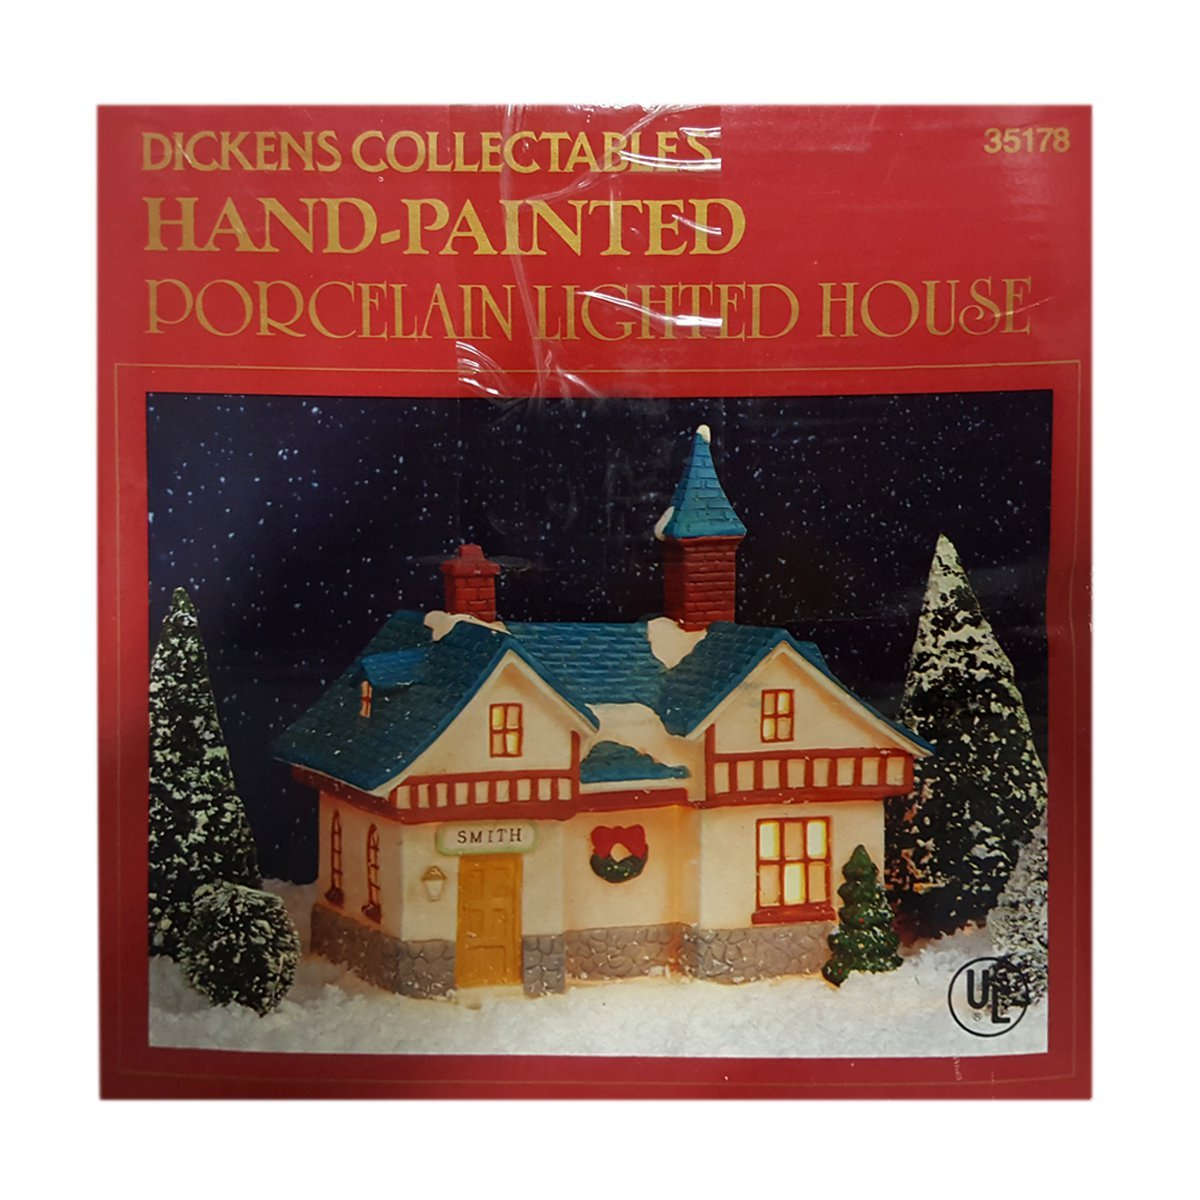 Dickens Collectibles Hand-Painted Porcelain Lighted Smith House